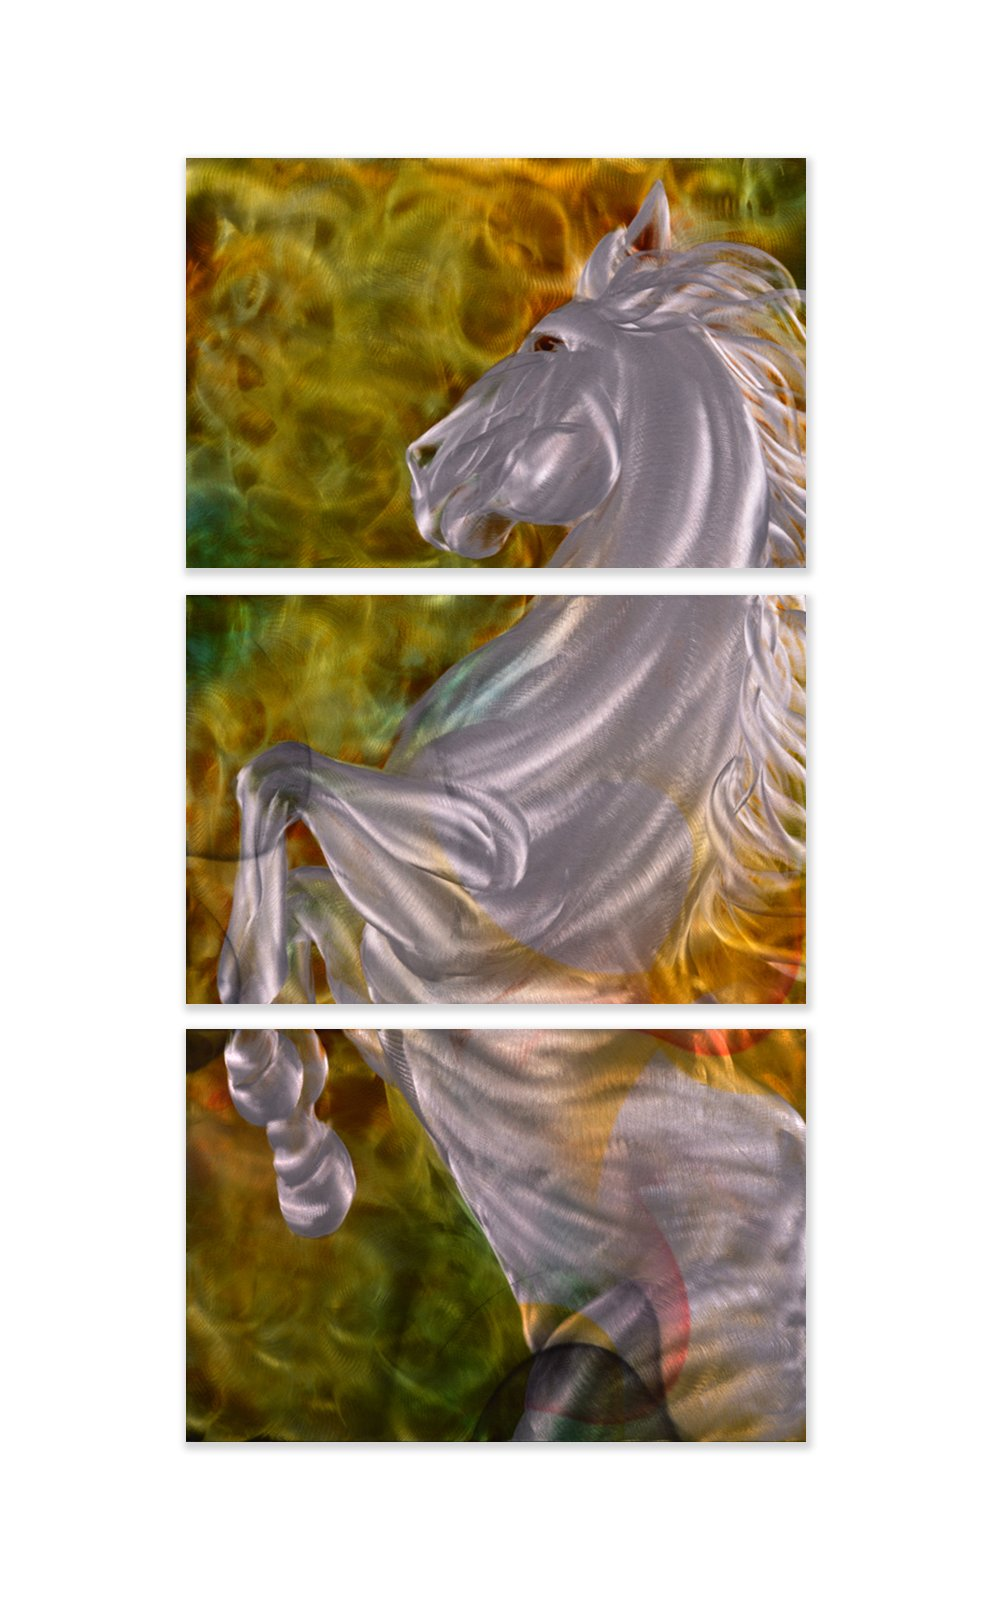 Luvurwall 3 Panel Vertical Horse Metal Wall Art, Metal Wall Art - Luvurwall